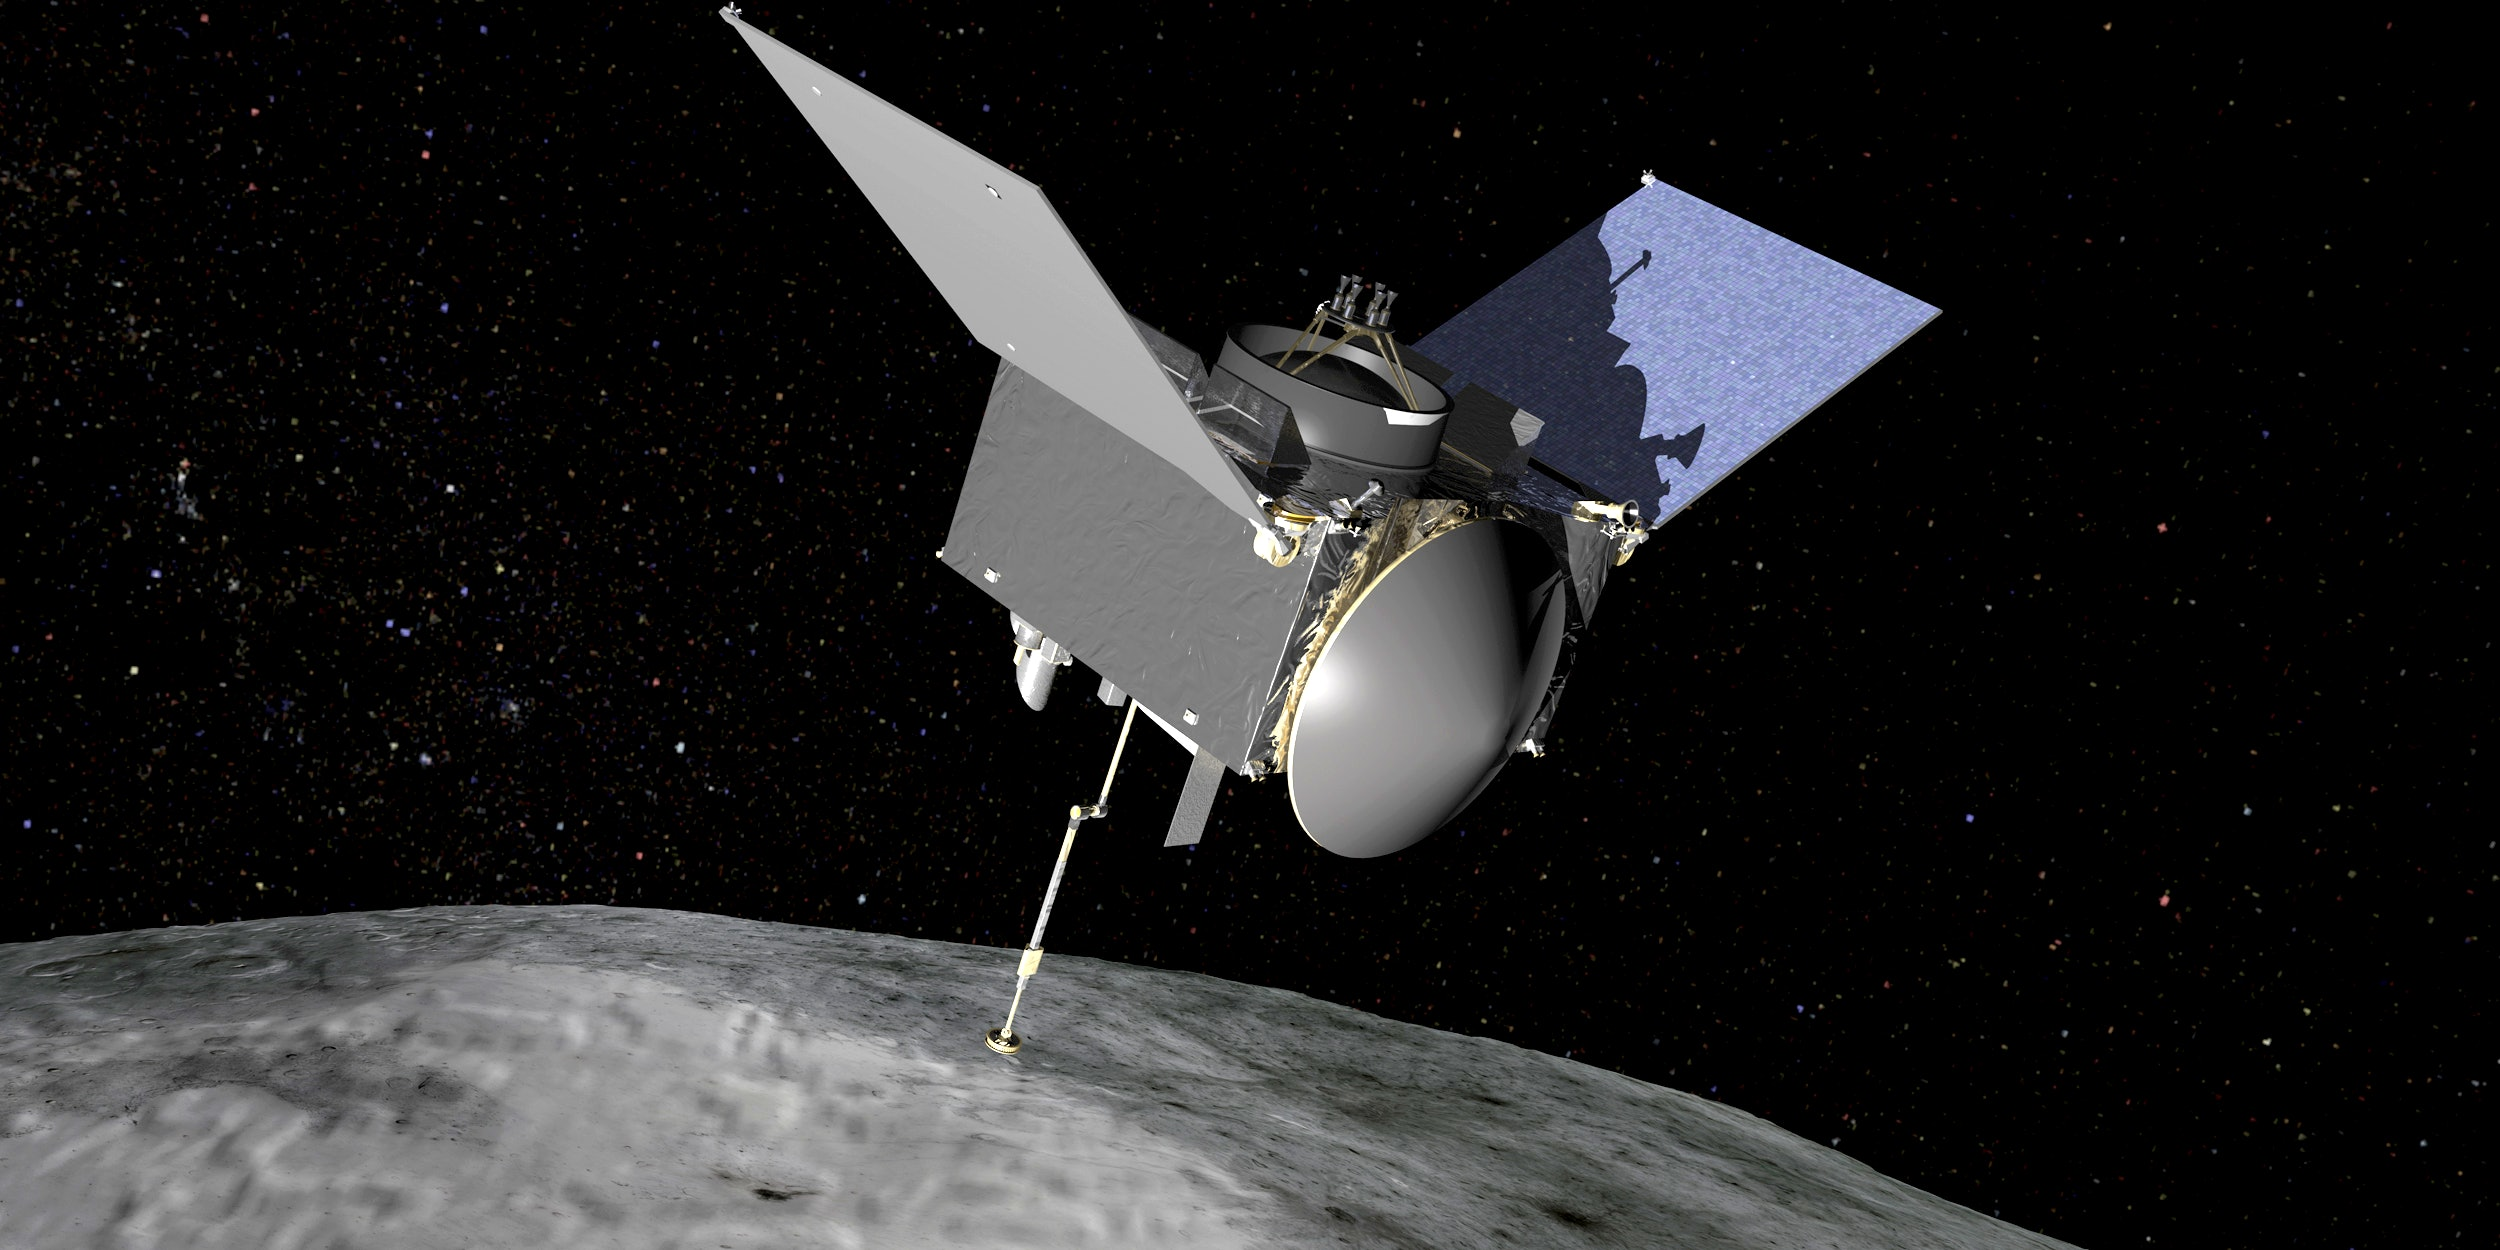 OSIRIS-REx will travel to near-Earth asteroid Benn on a sample return mission